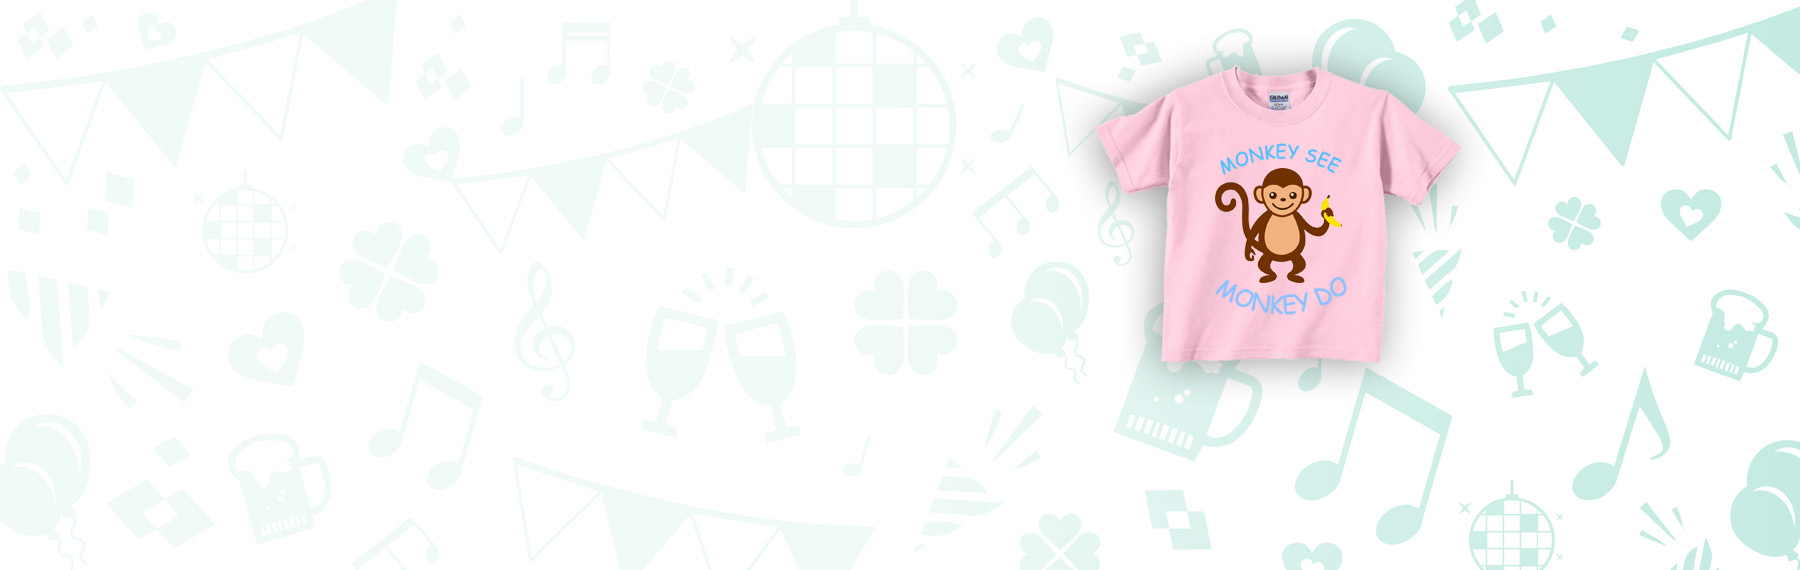 Custom Baby Clothing Canada.